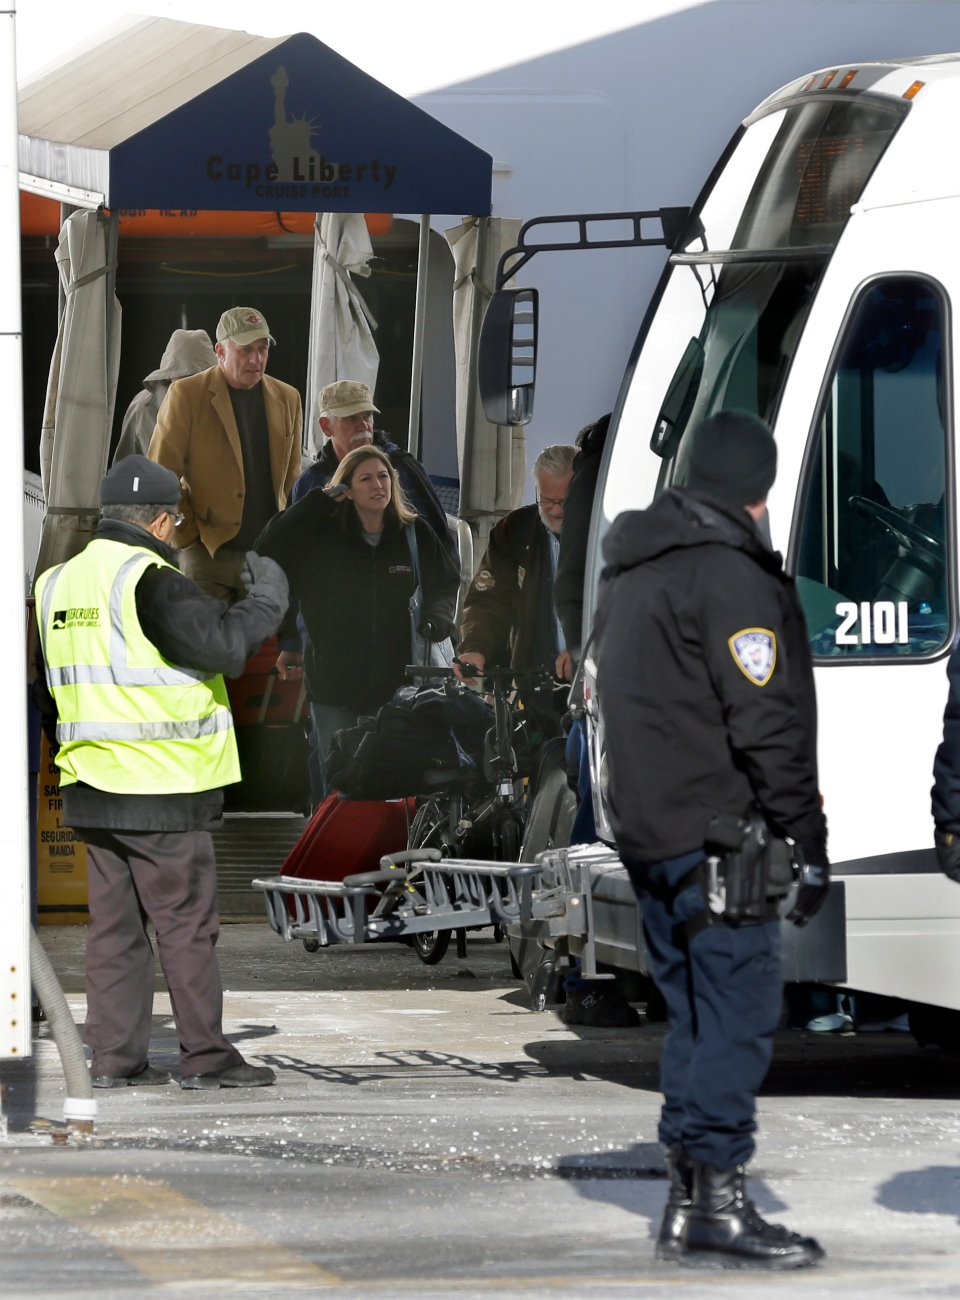 Passengers disembark from the Explorer of the Seas cruise ship to waiting buses after it docked in Bayonne, N.J., Wednesday, Jan. 29, 2014. (AP / Mel Evans)